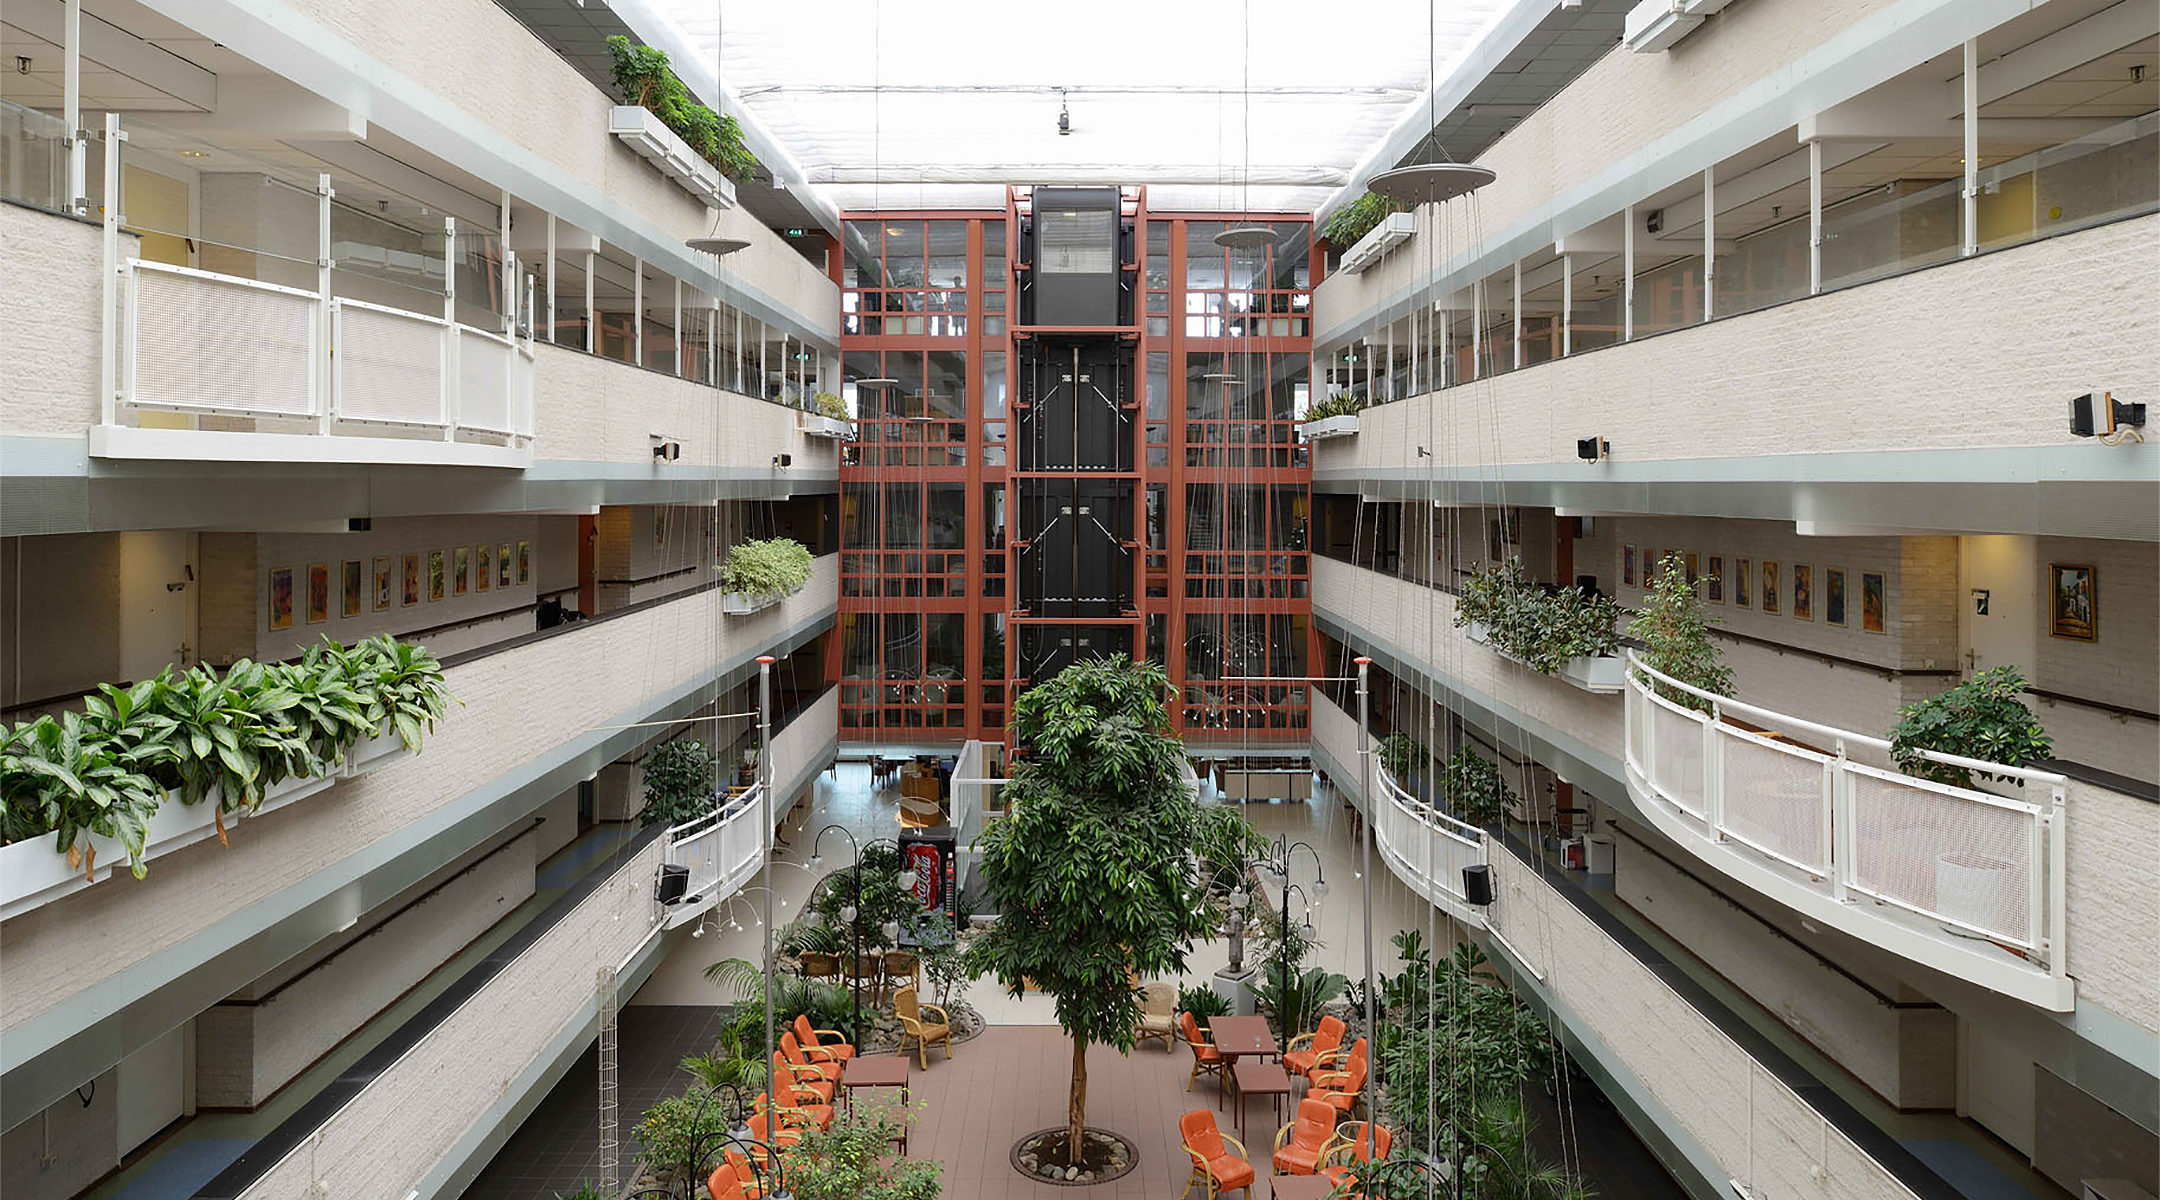 The atrium at the Beth Shalom nursing home in Amsterdam, the Netherlands. (courtesy of BOP architecten)